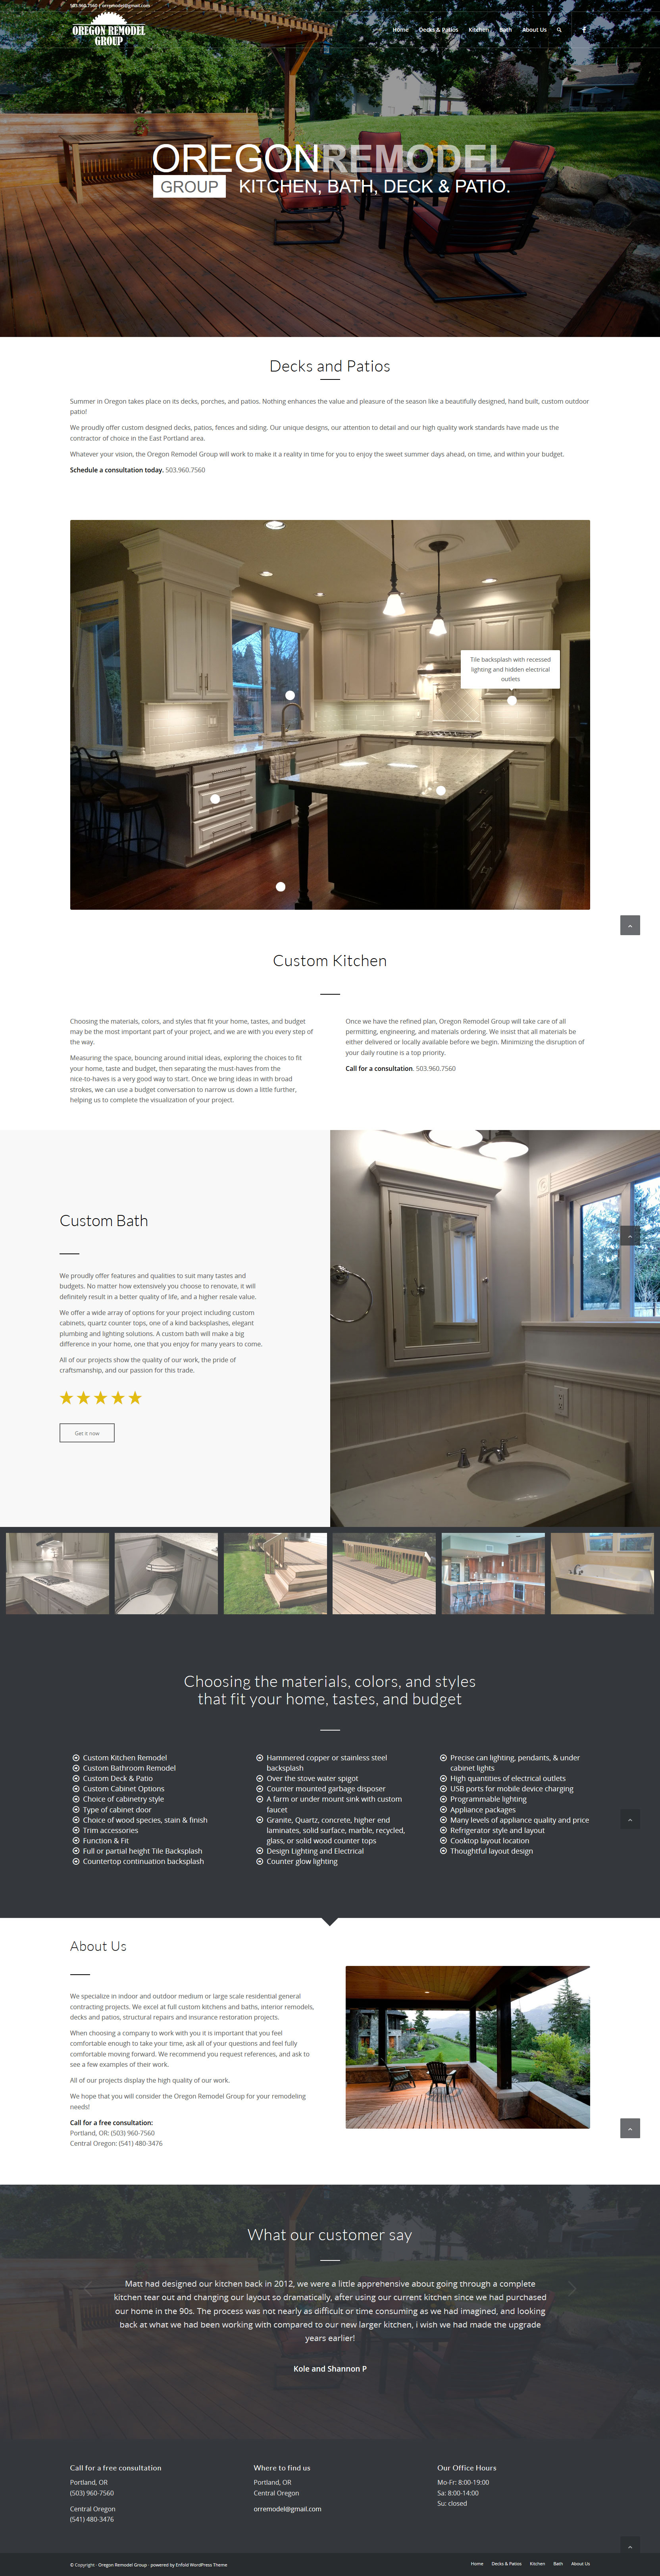 One Page Website Design for the Oregon Remodel Group